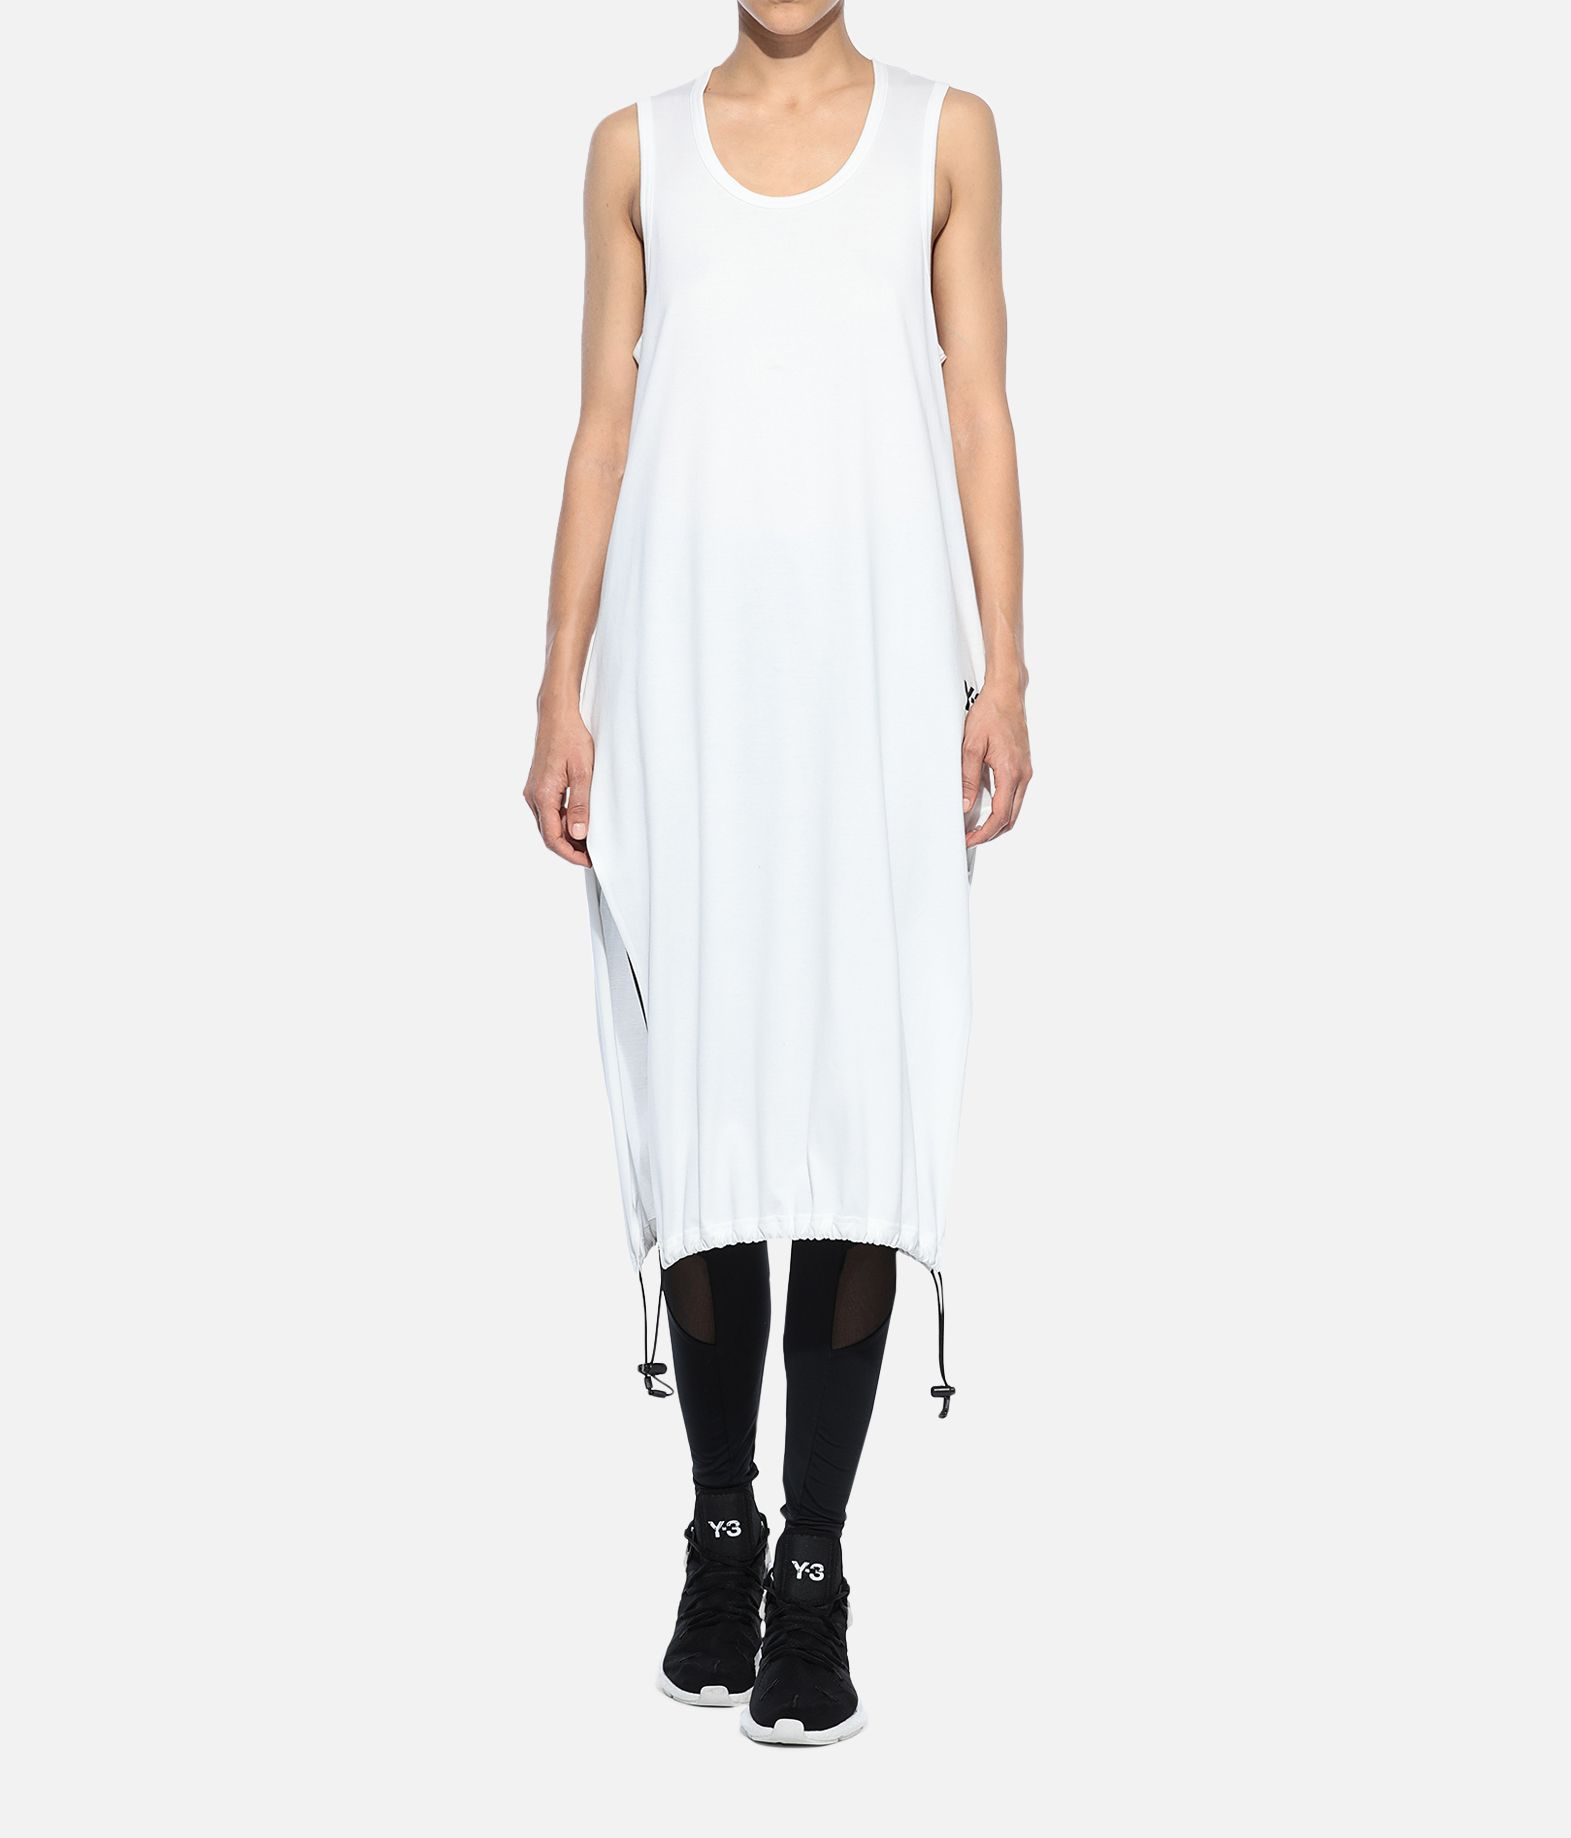 Y-3 Y-3 Drawstring Long Tank Top Sleeveless t-shirt Woman a